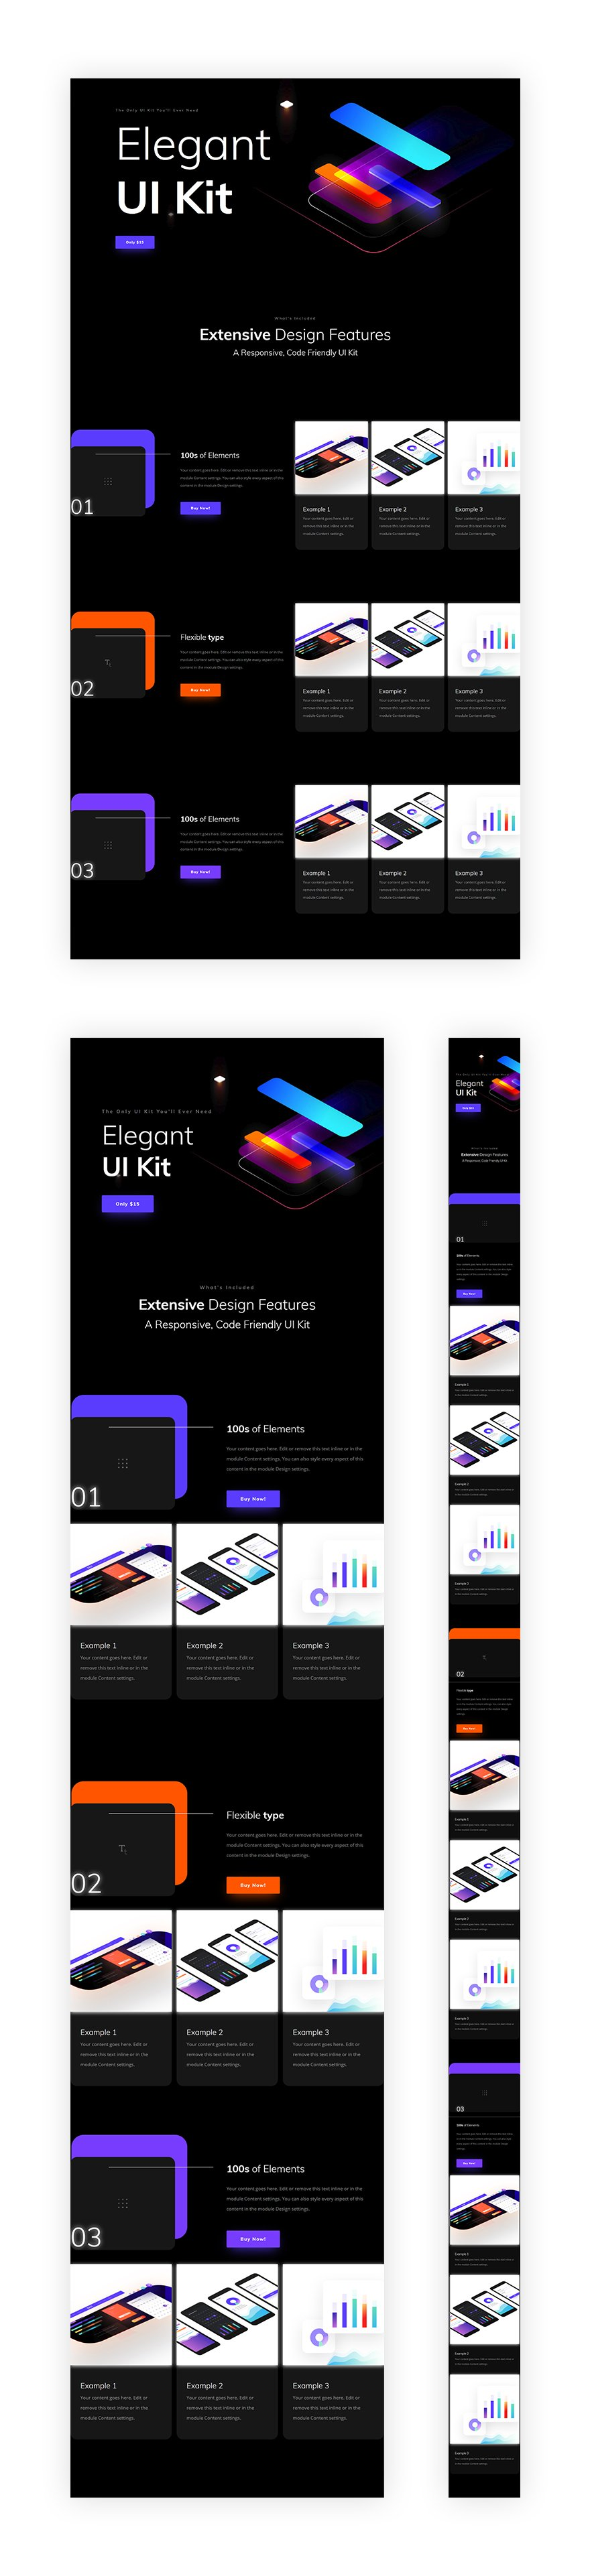 Using Divi's Exclusive Black Friday UI Kit Layout to List Products & Features Beautifully